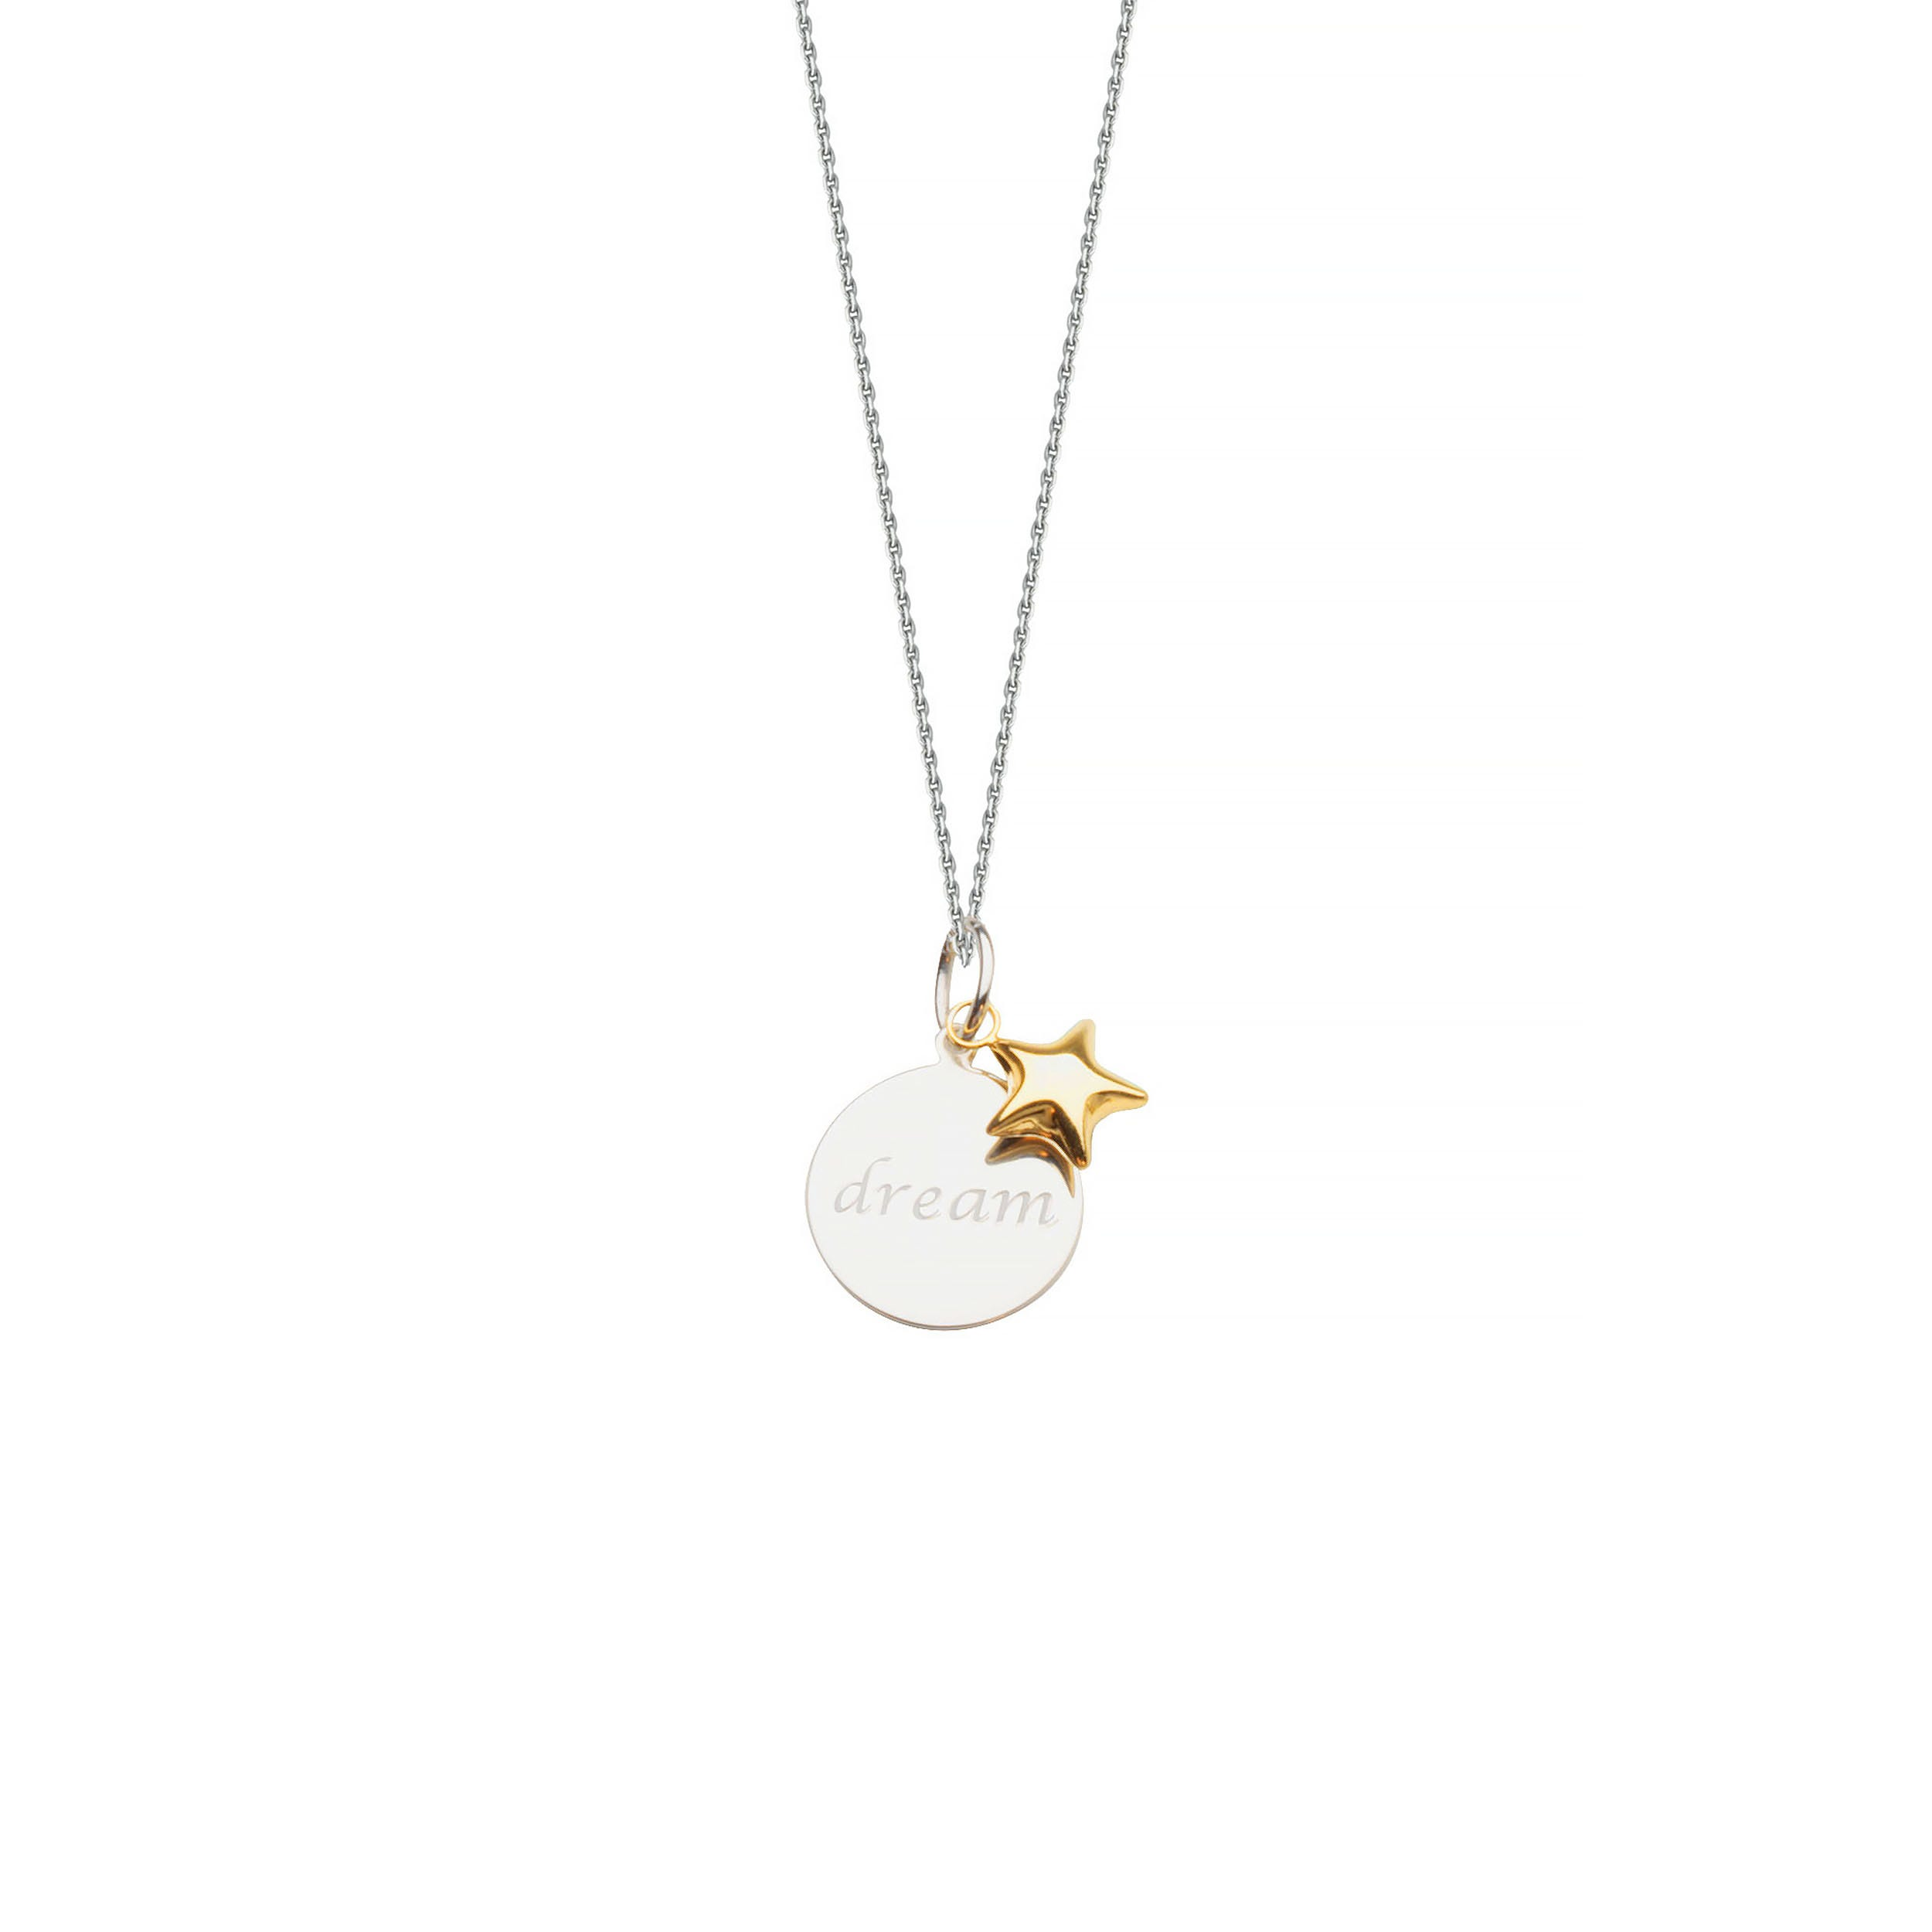 Dream Disc & Star Charm Pendant in Sterling Silver & 14k Gold